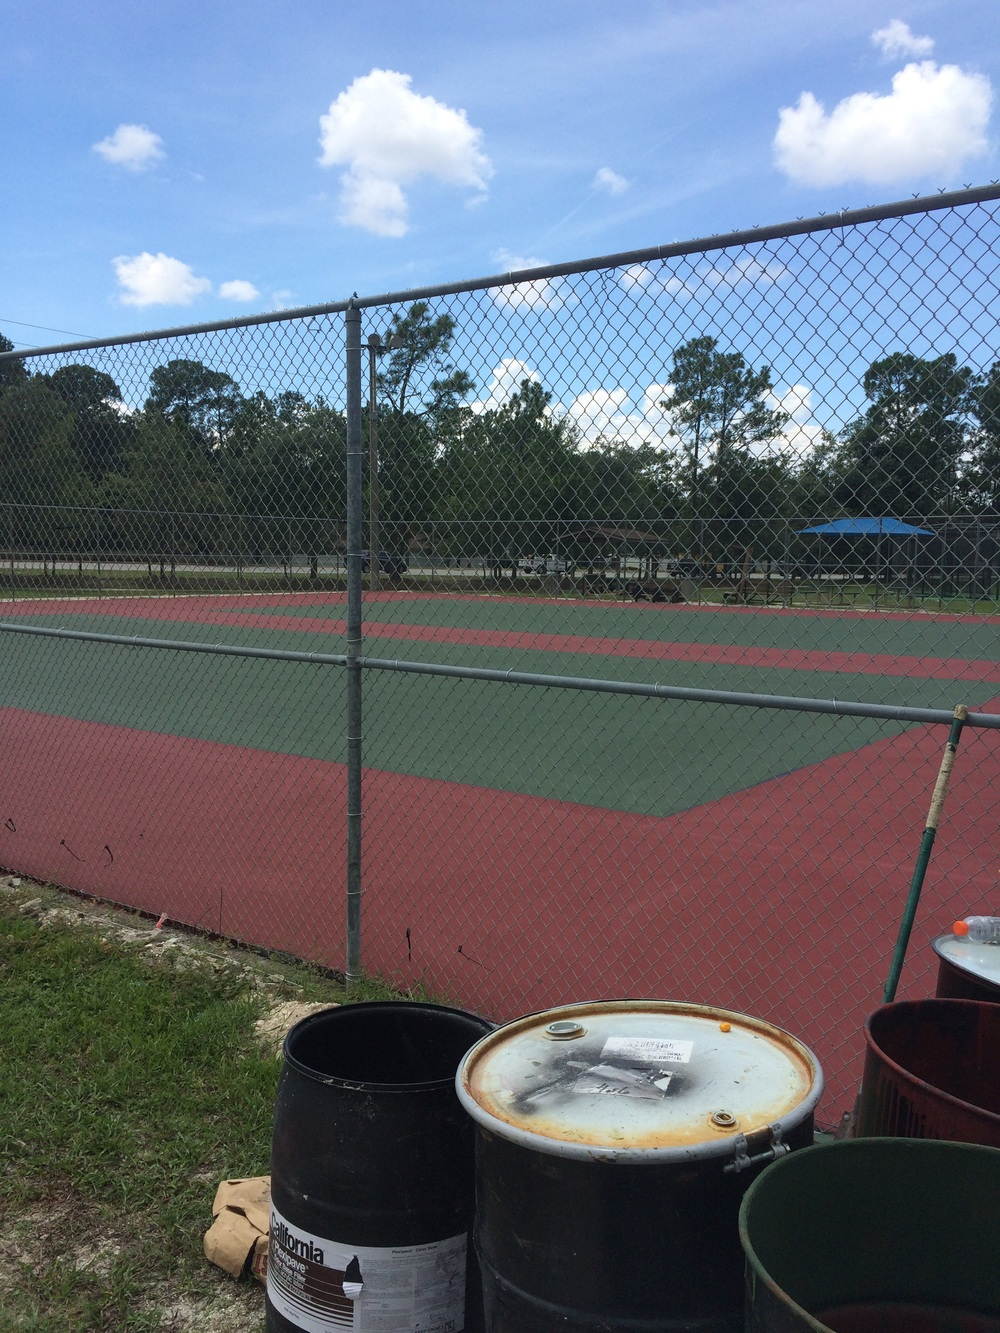 Courts are being painted!